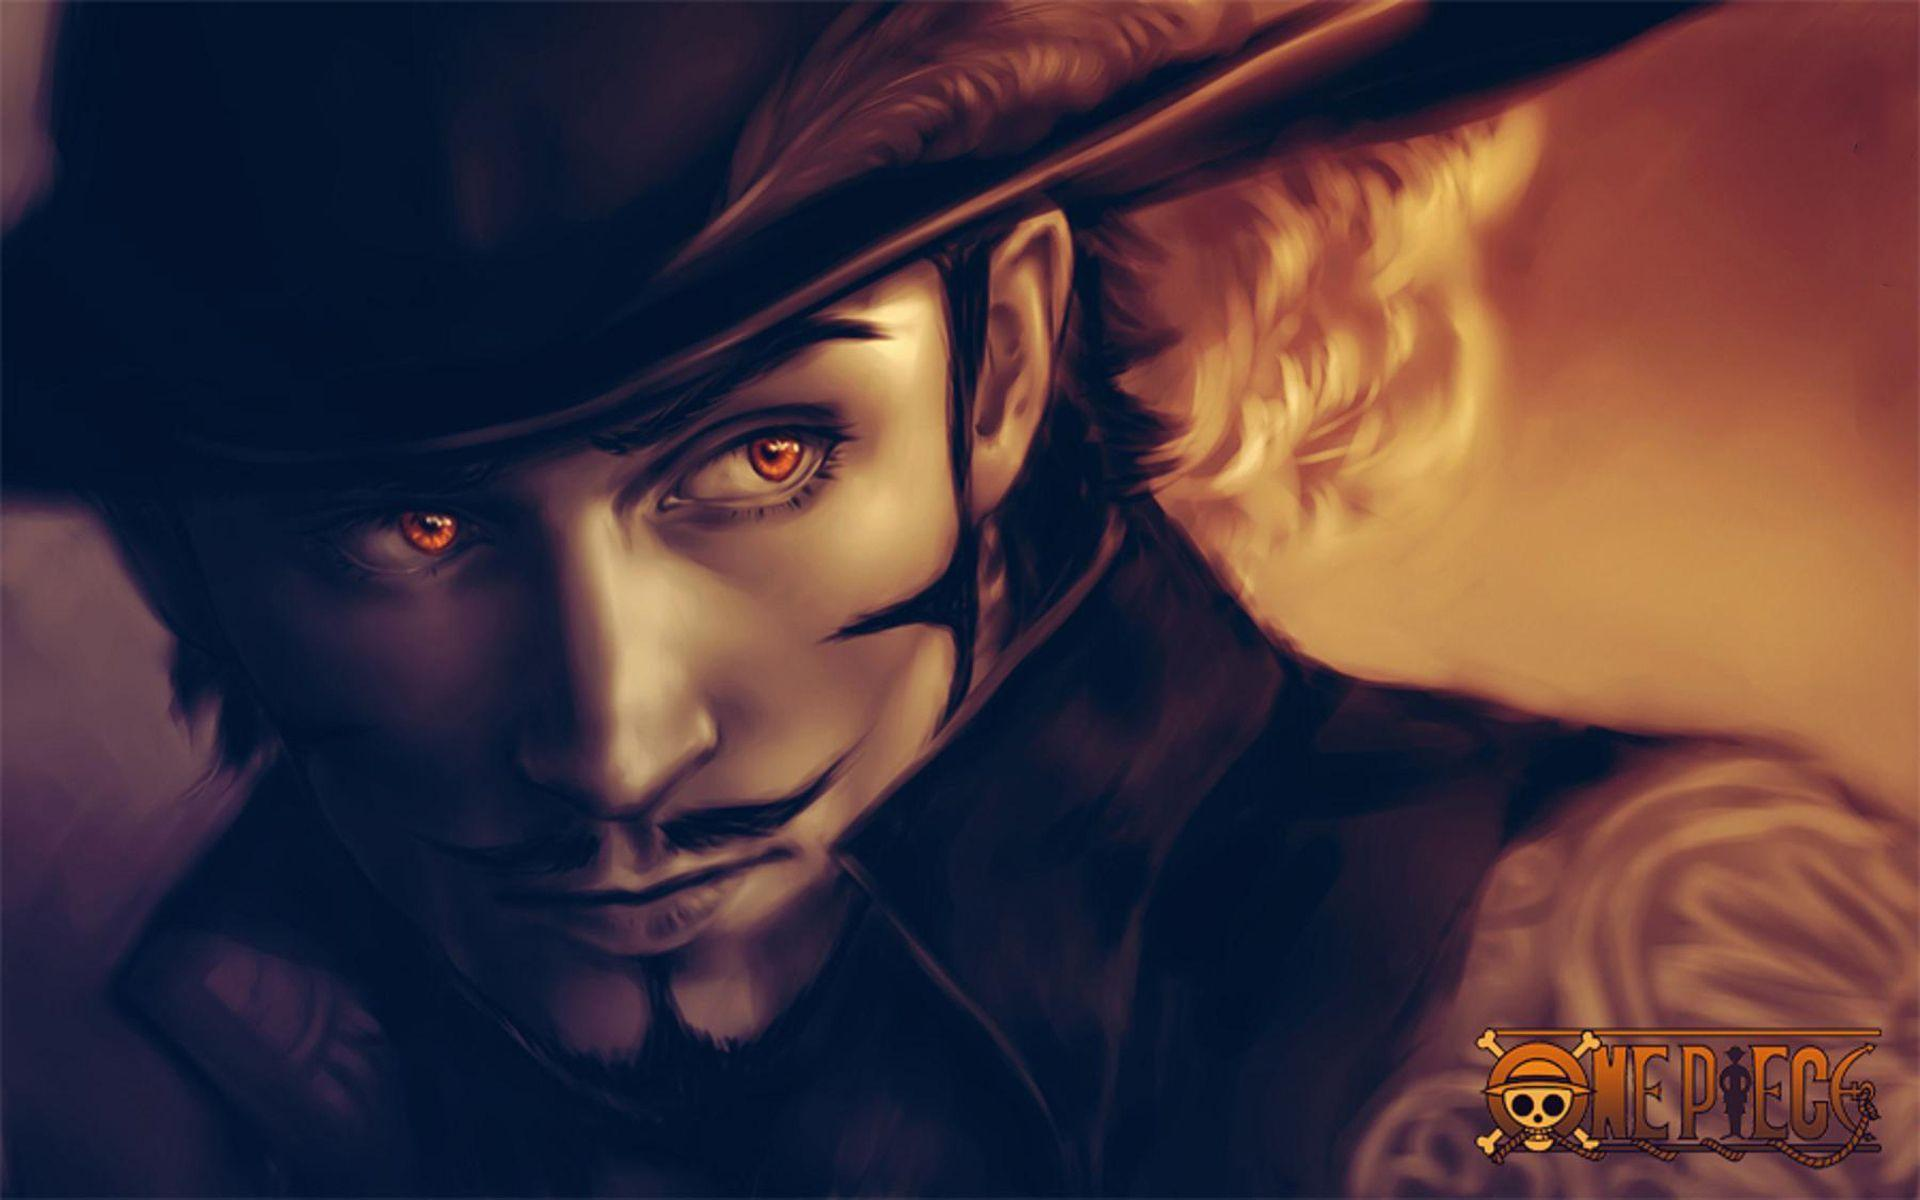 Dracule Hawk Eyes Mihawk Full HD Wallpapers and Backgrounds Image